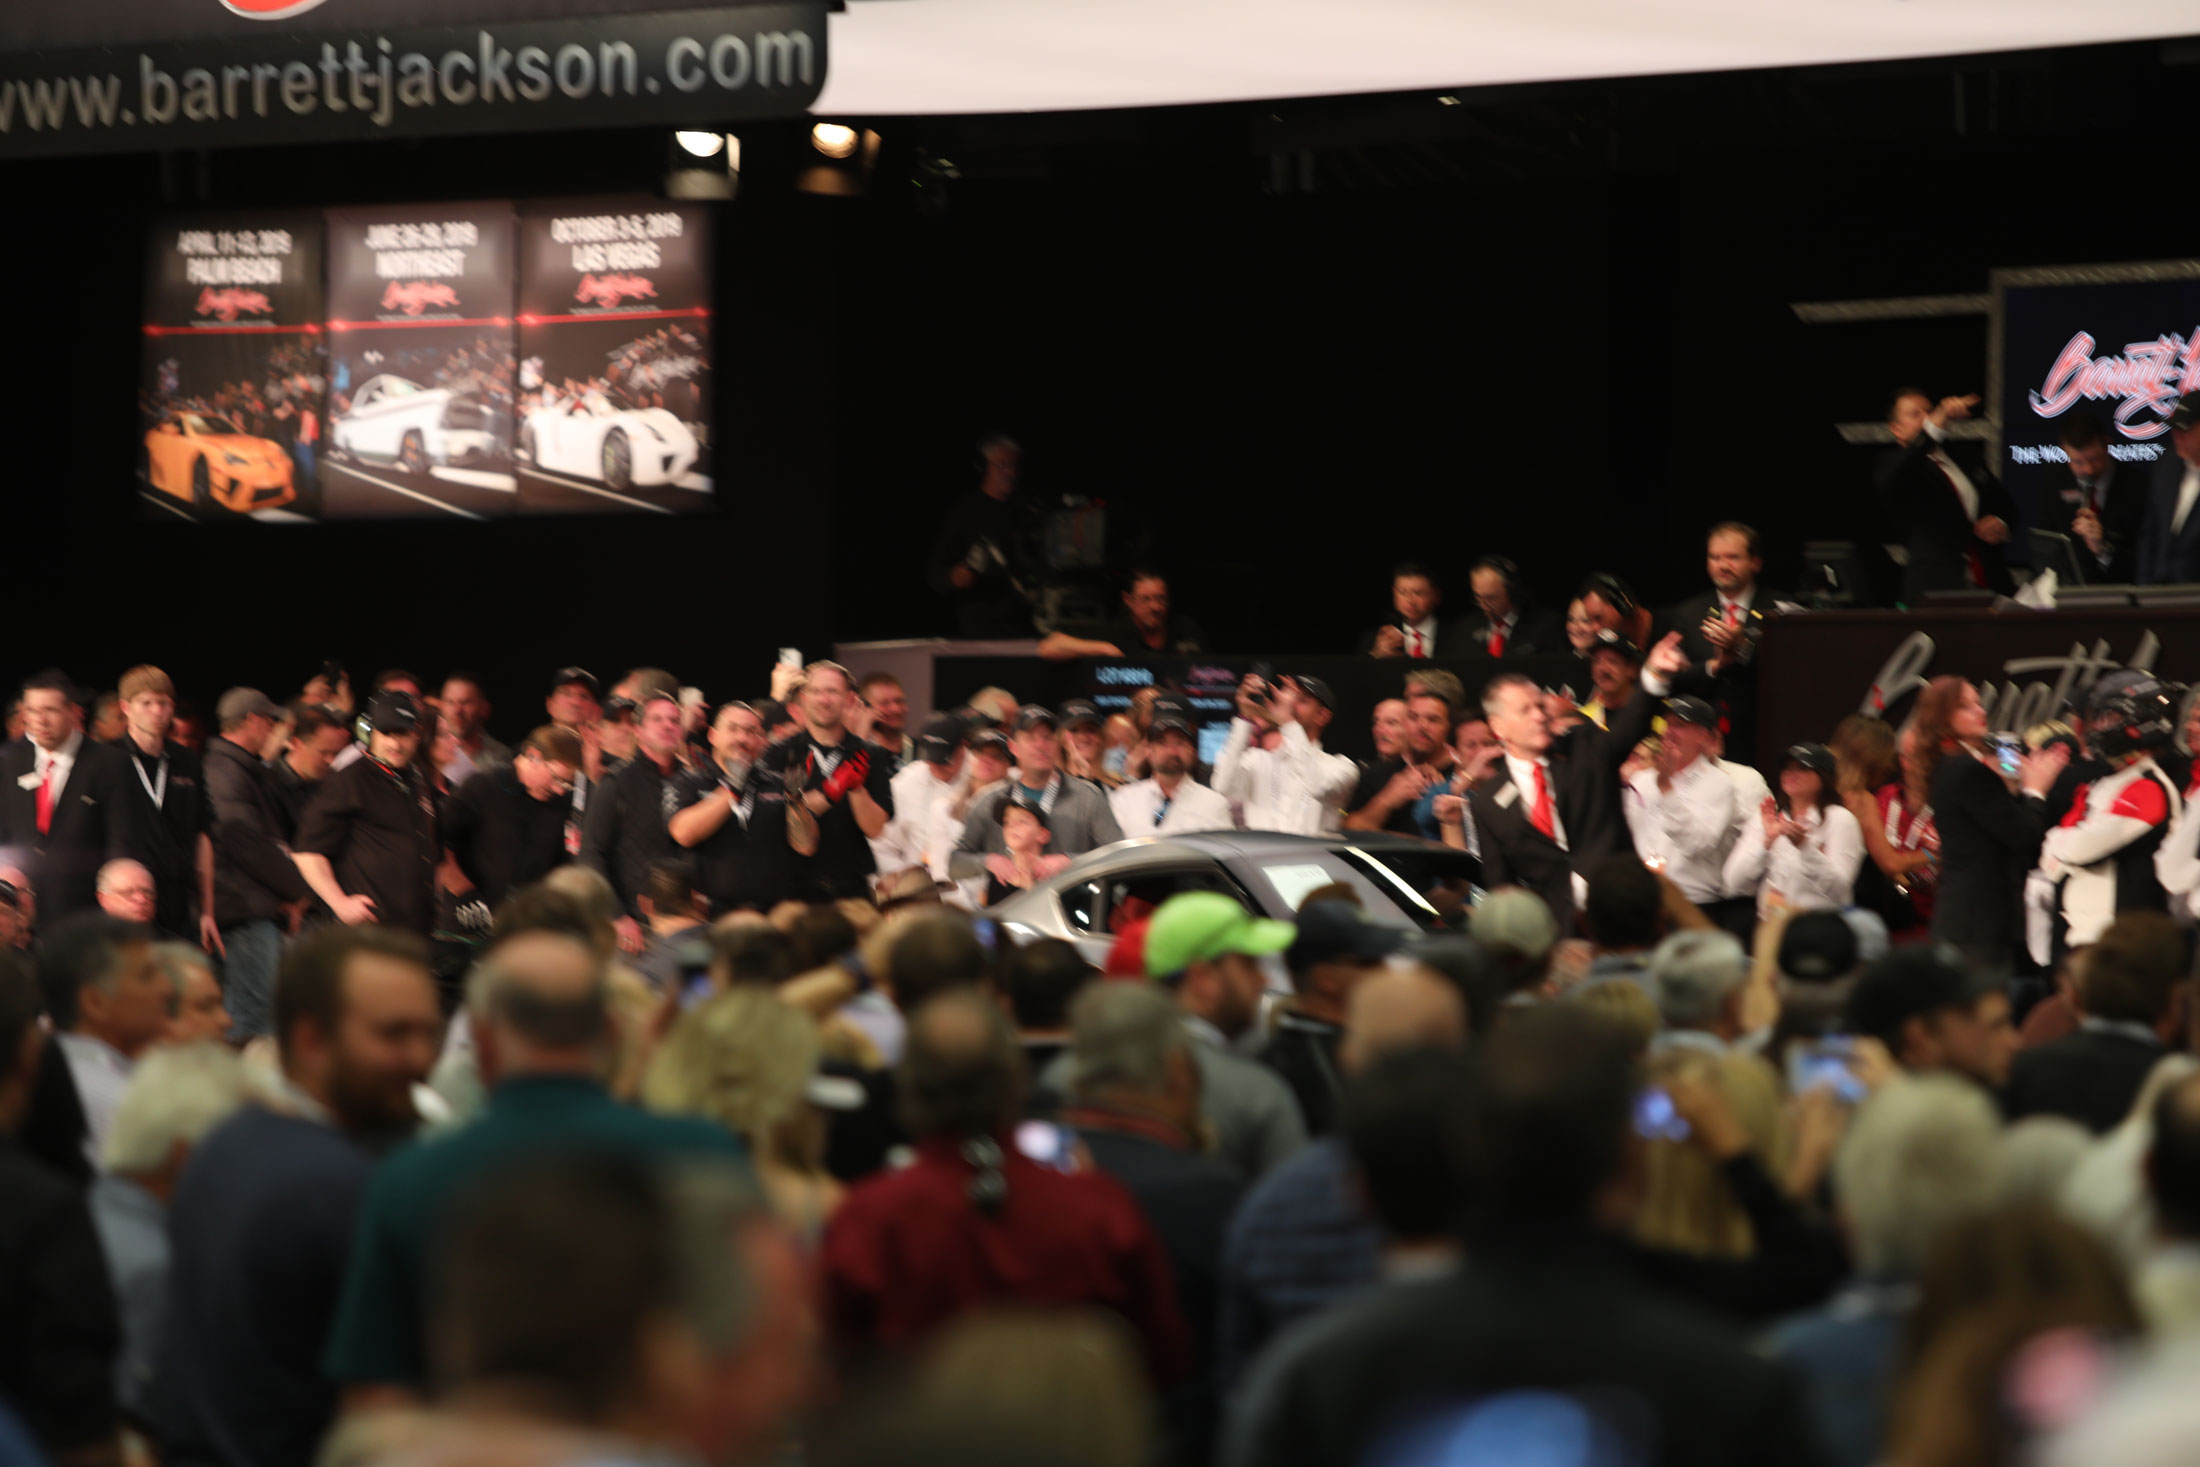 Chaos during the 2020 Toyota Supra sale at Barrett-Jackson